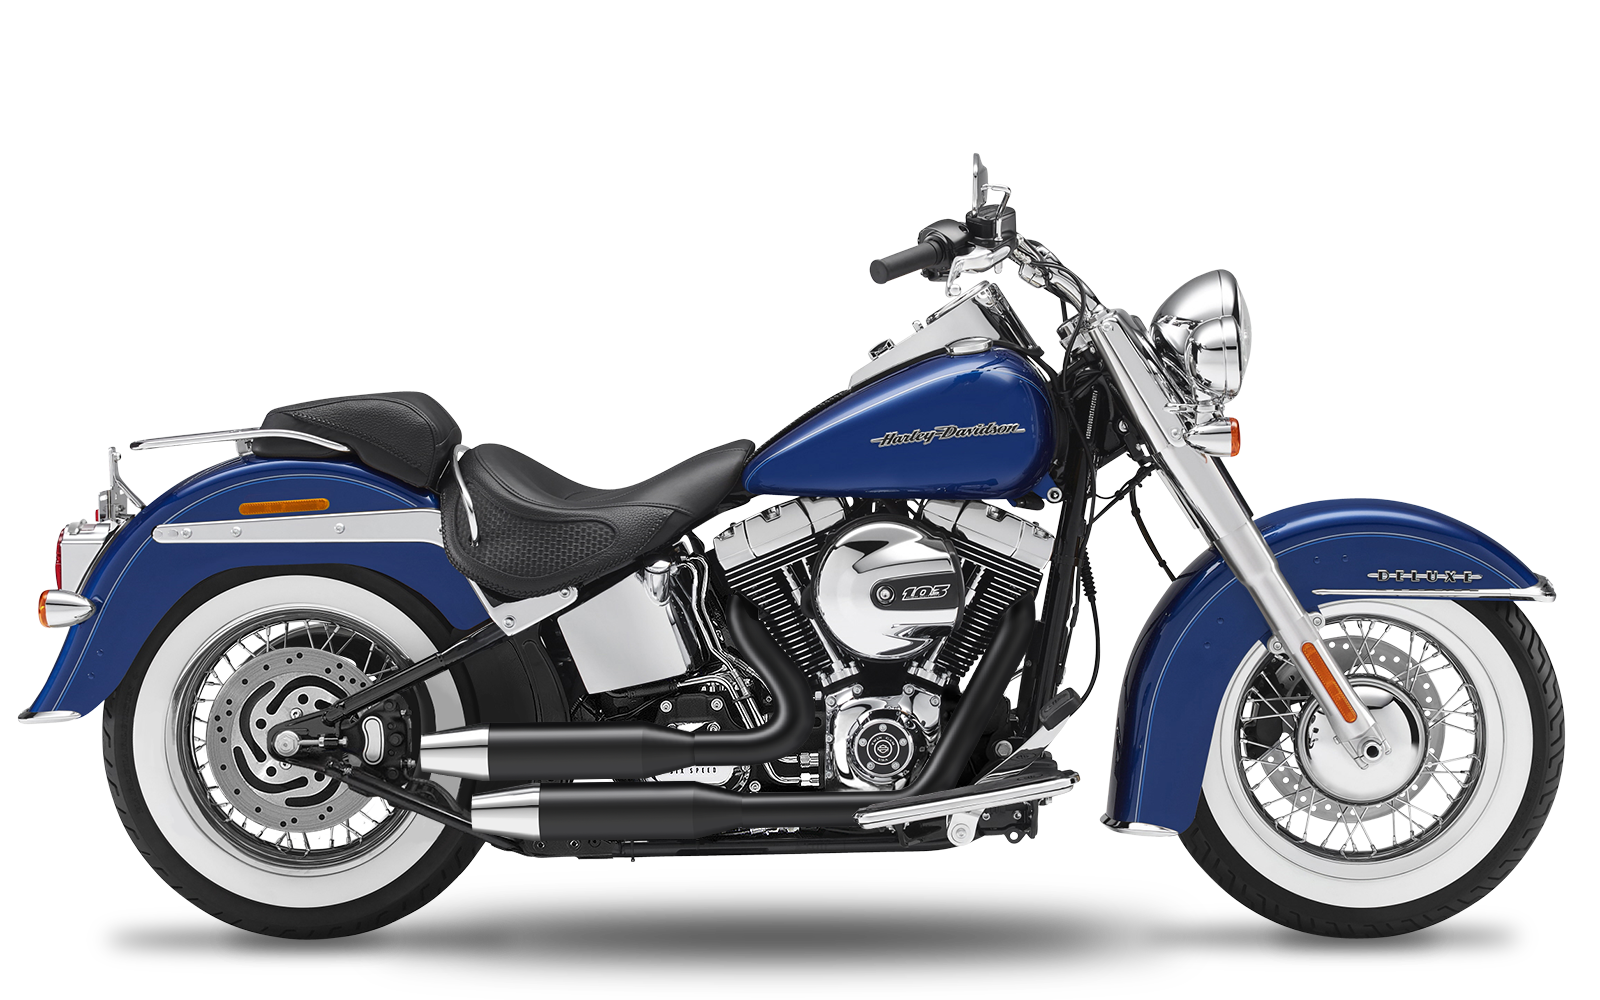 Softail - Deluxe - TC103 - 2012-2016 - Complete systems